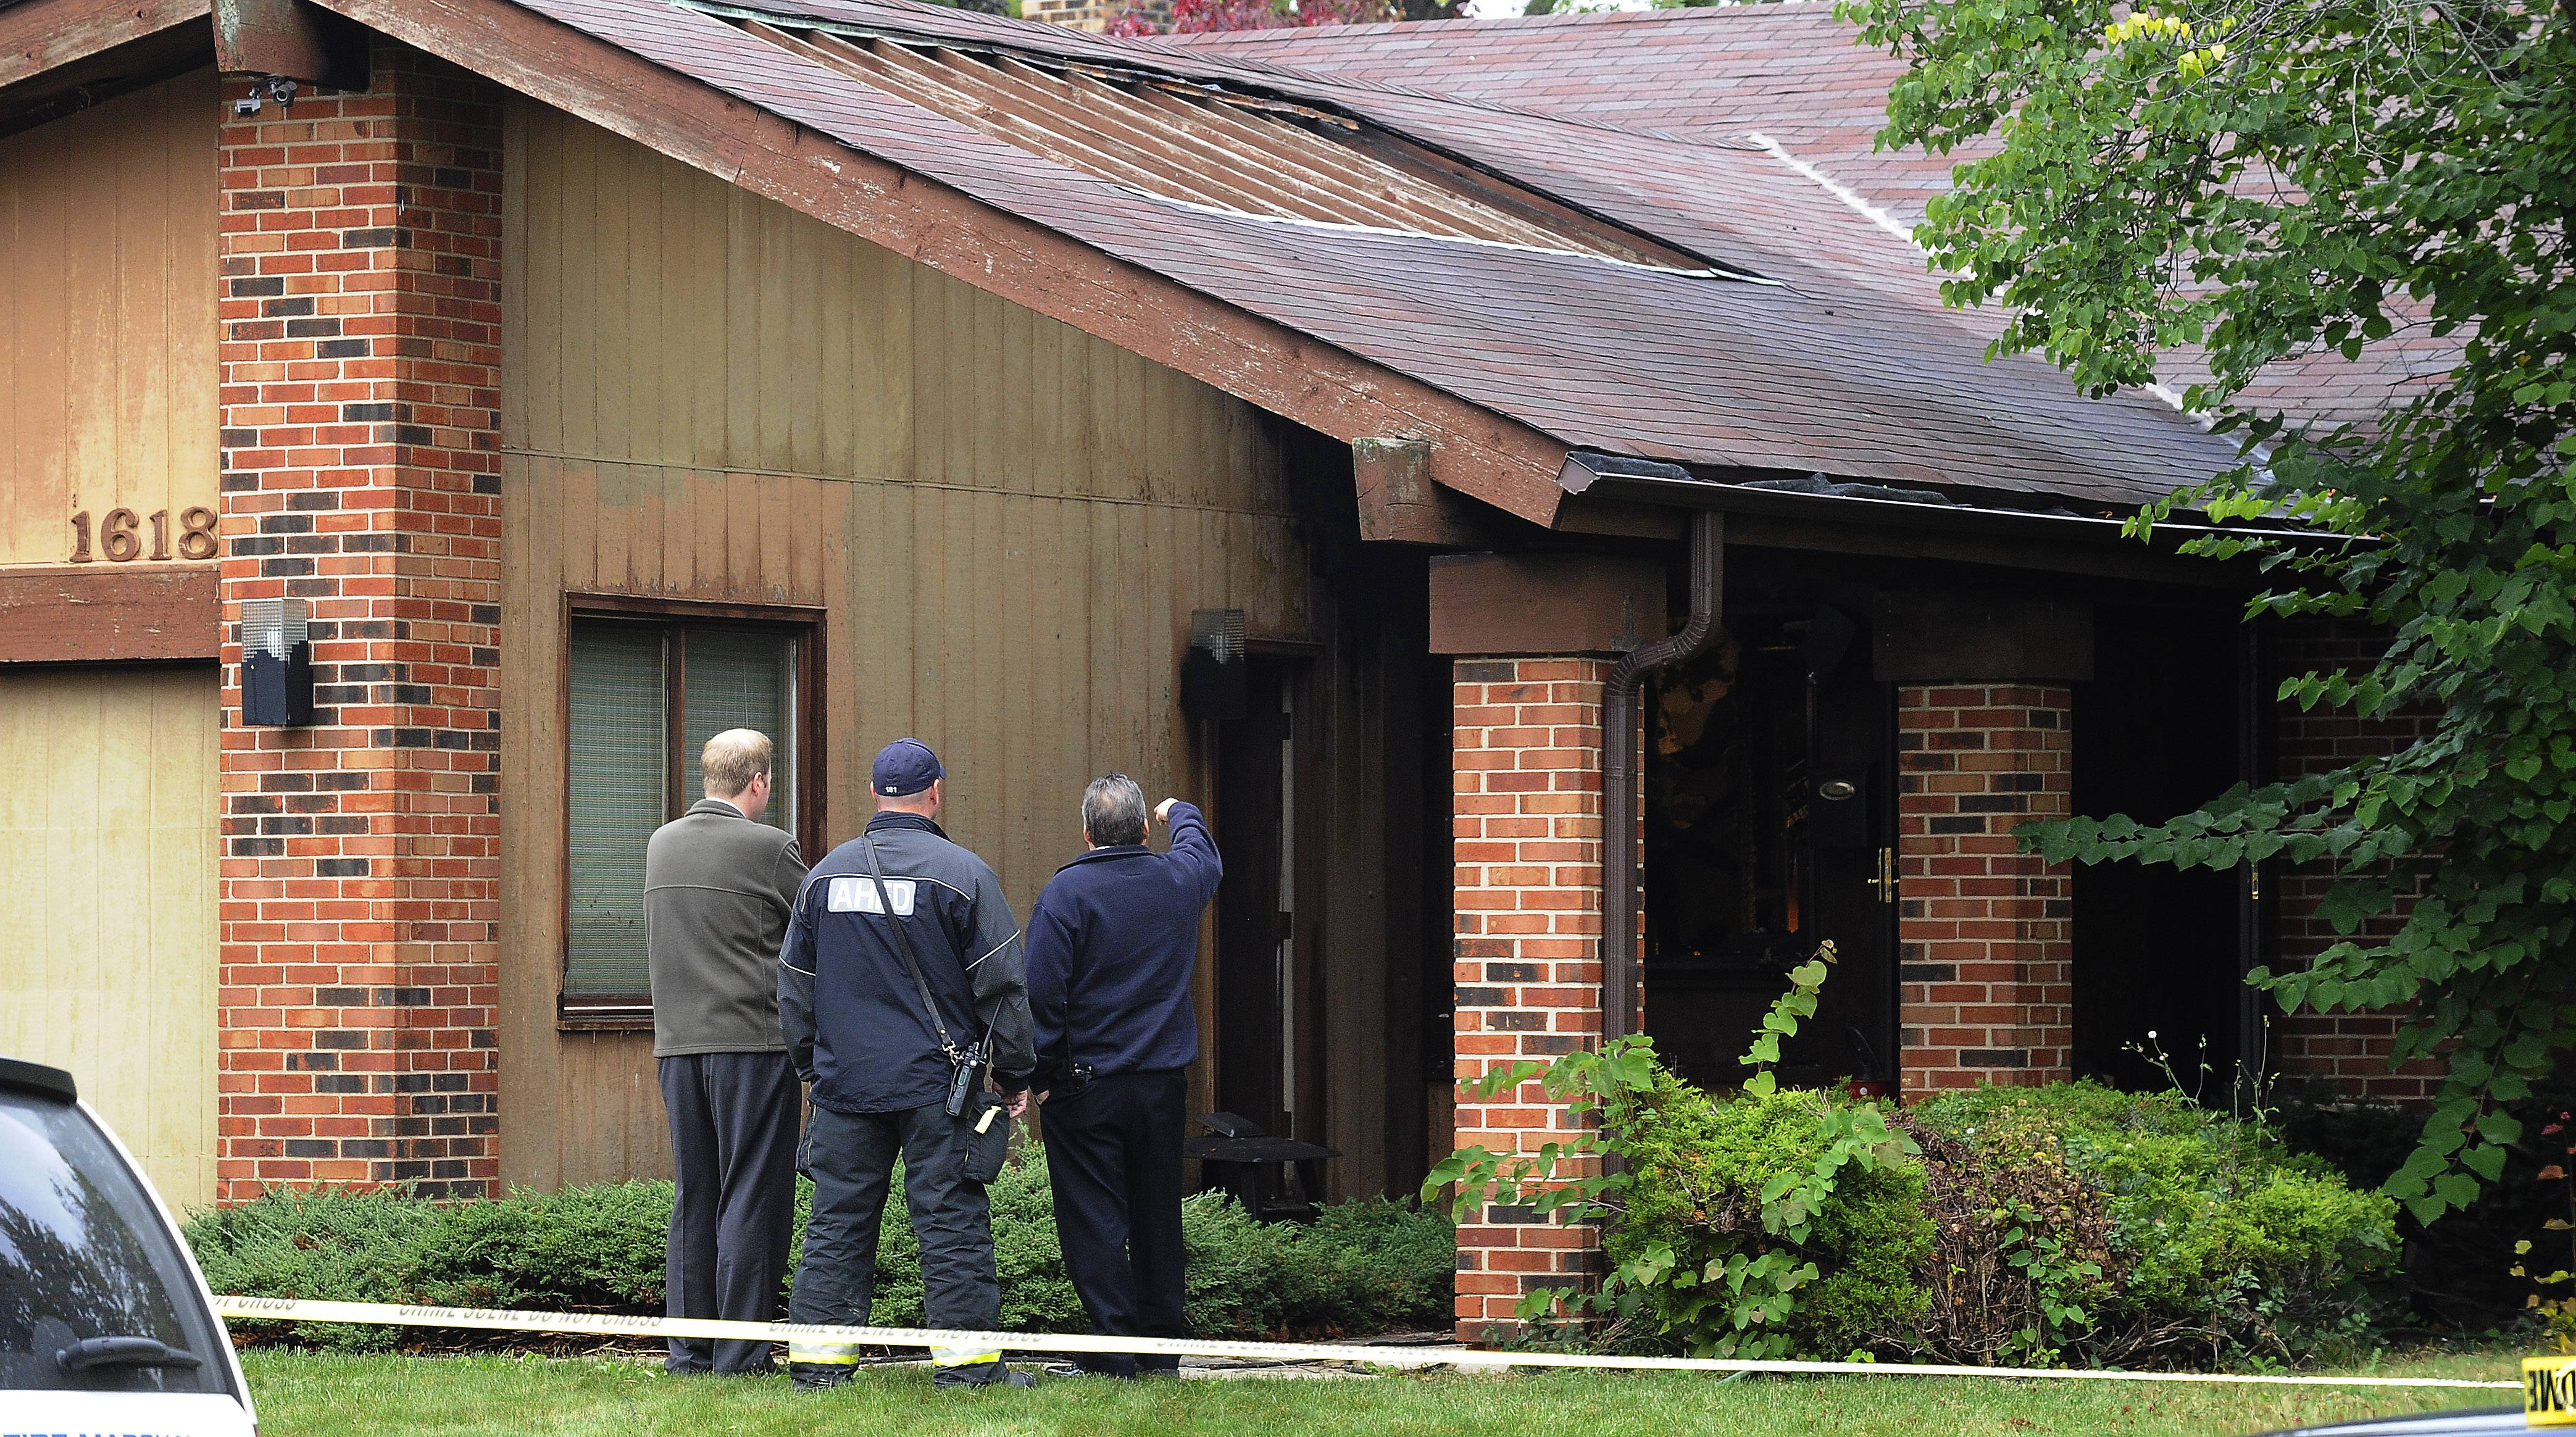 68-year-old man dies in Arlington Heights house fire